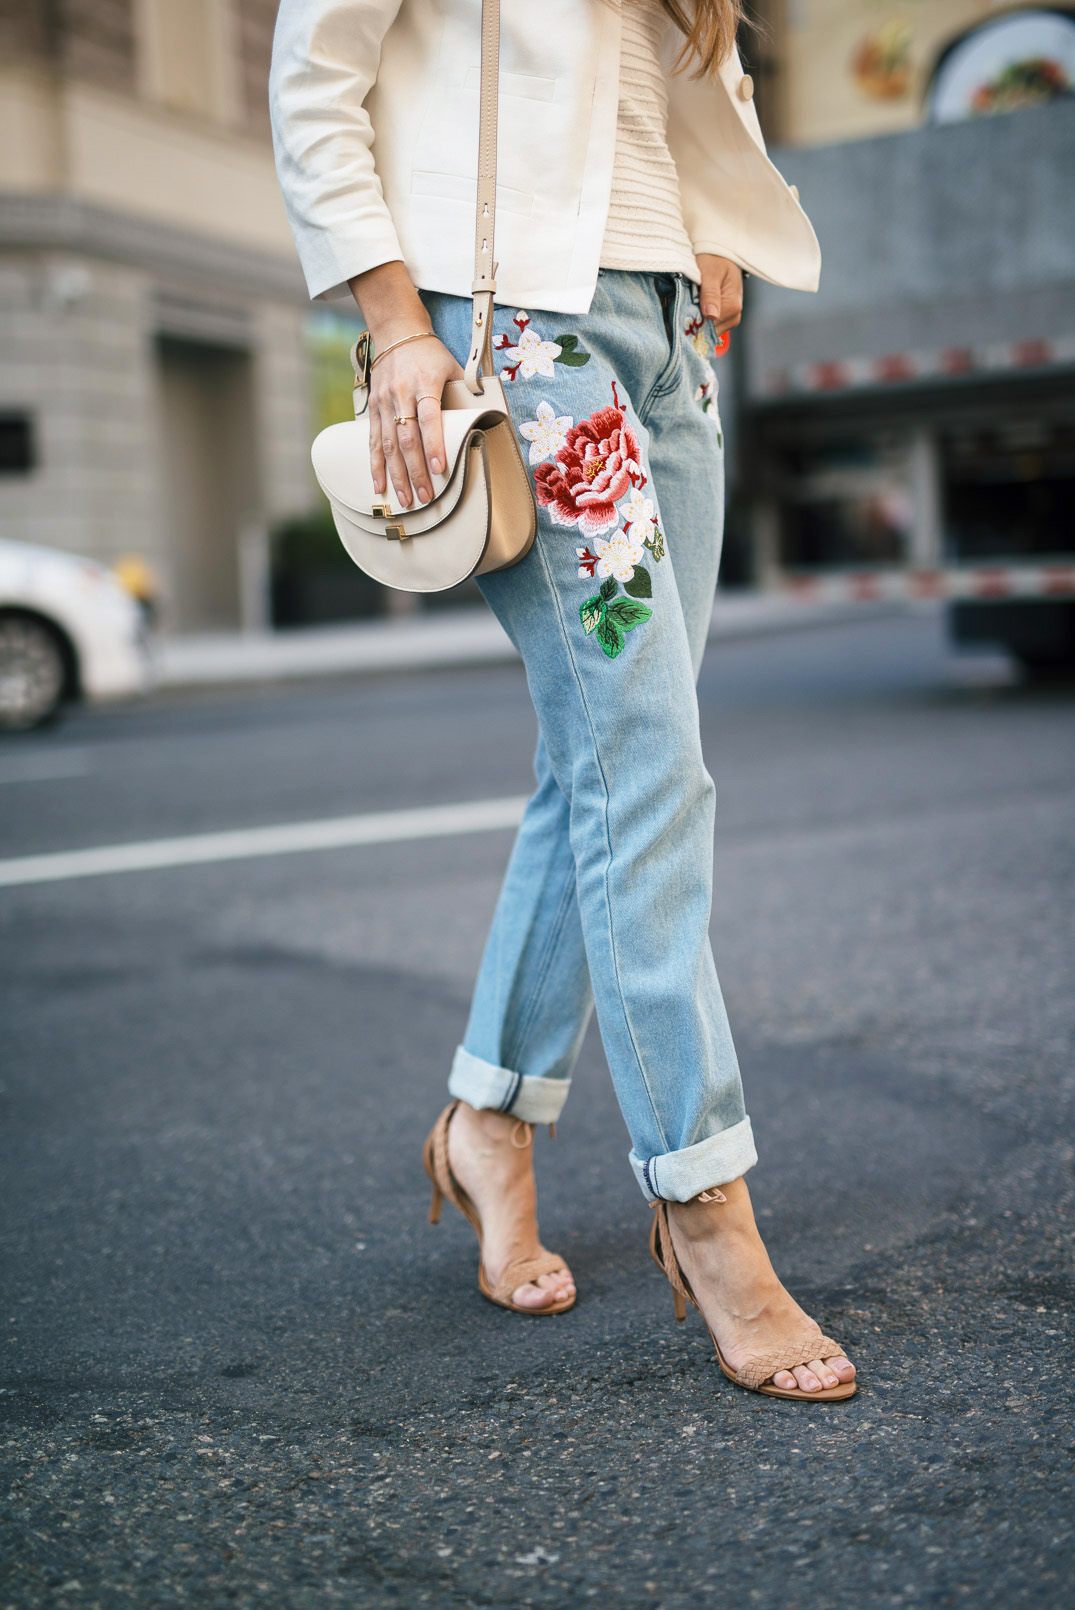 embroidered-jeans-the-girl-from-panama-ribbed-sleeveless-sweater-ann-taylor-linen-jacket-braided-strappy-sandals-chloe-georgia-bag-16-copy